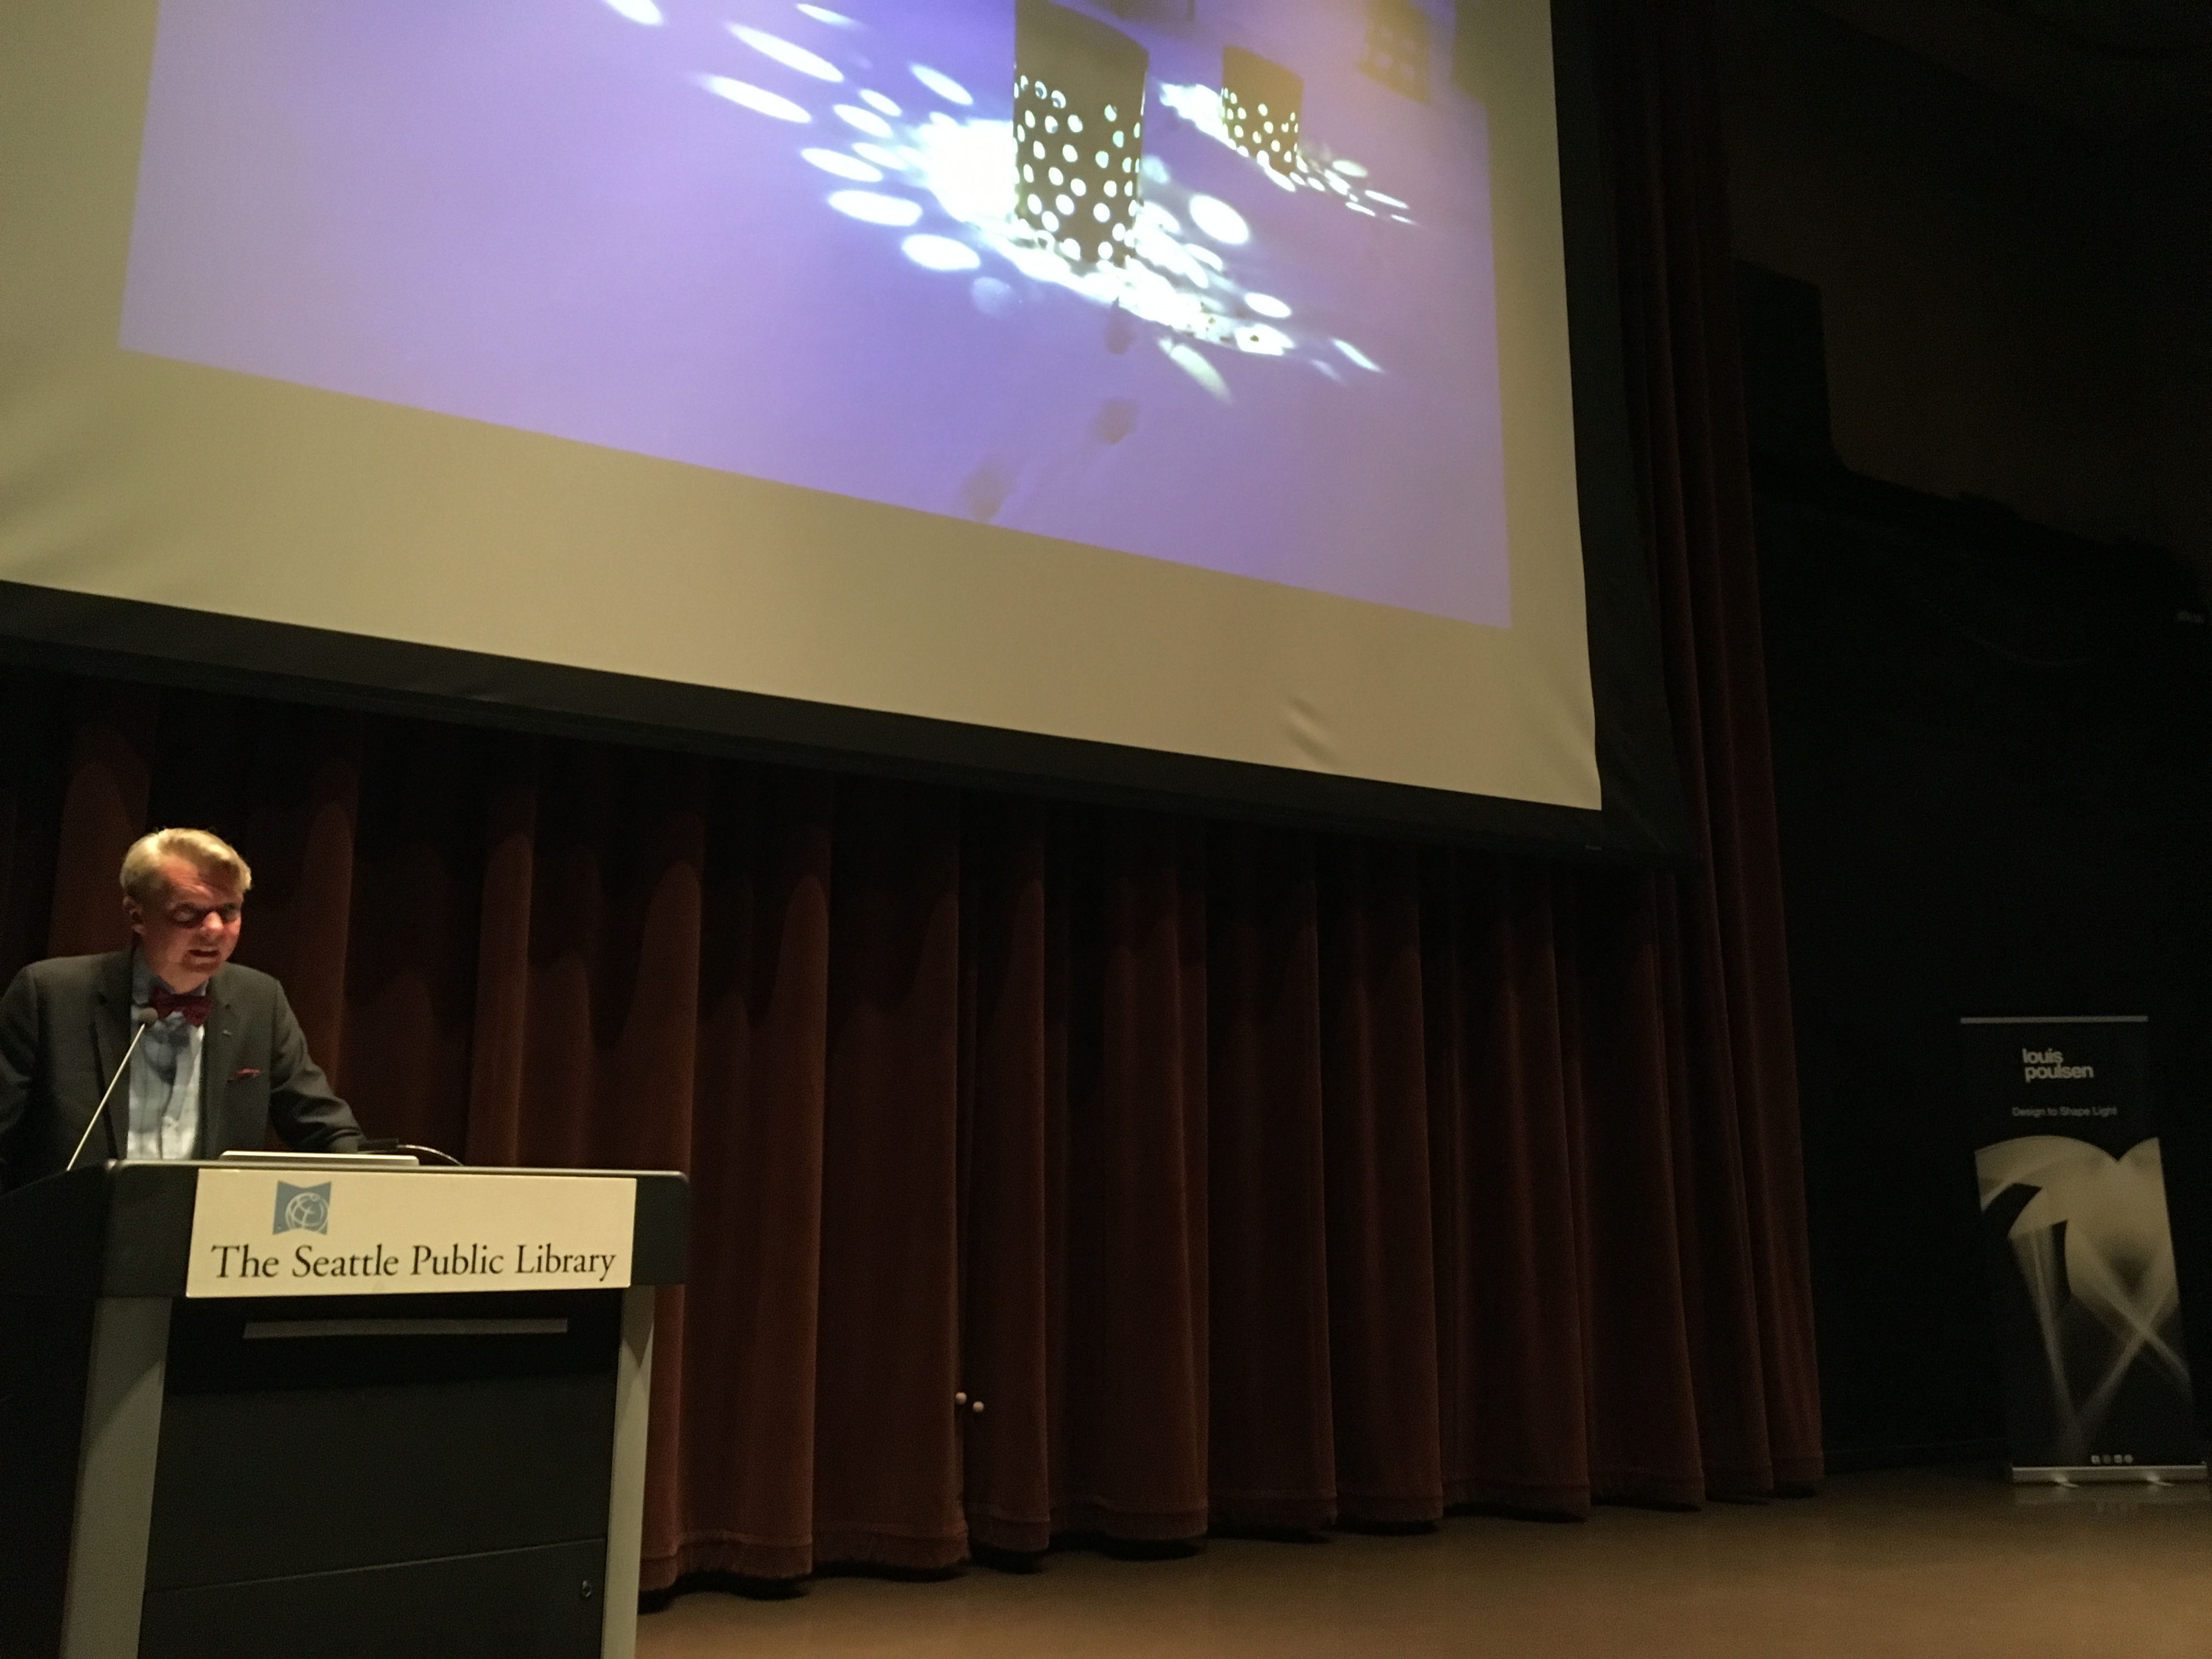 Johan Moritz, IALD, gives talk at Seattle Public Library